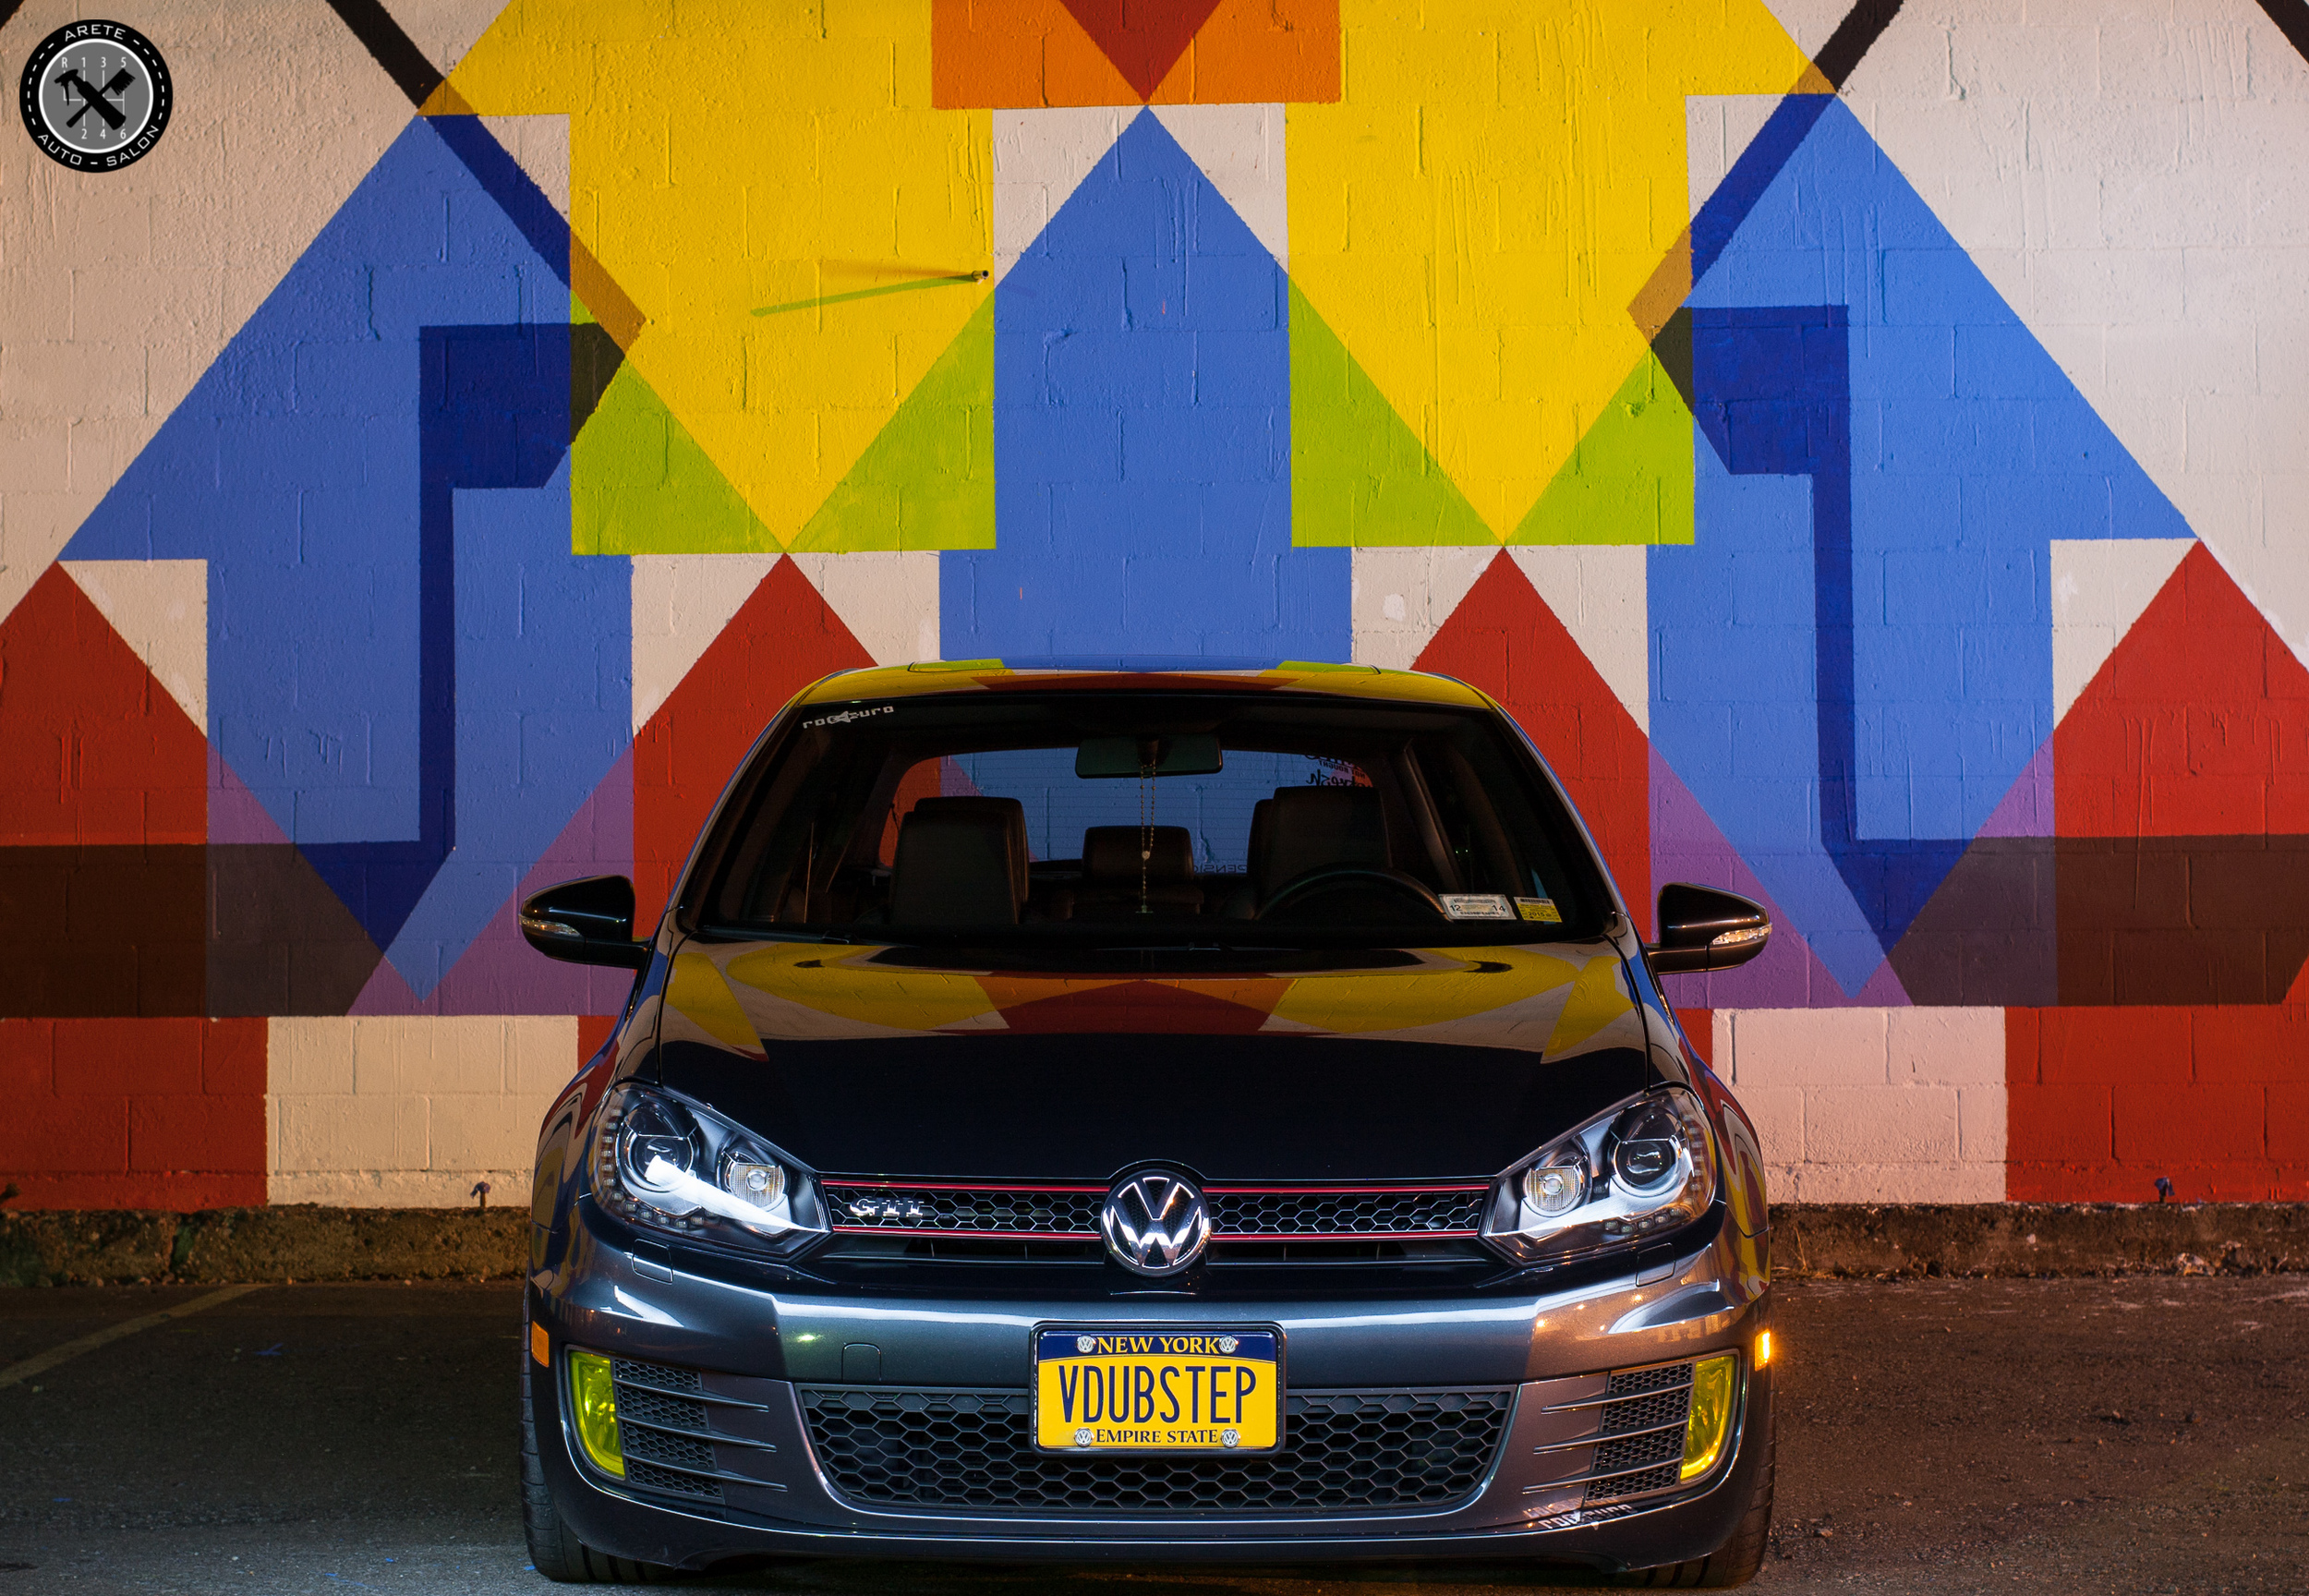 Rochester, NY wall therapy always provides great backdrops.